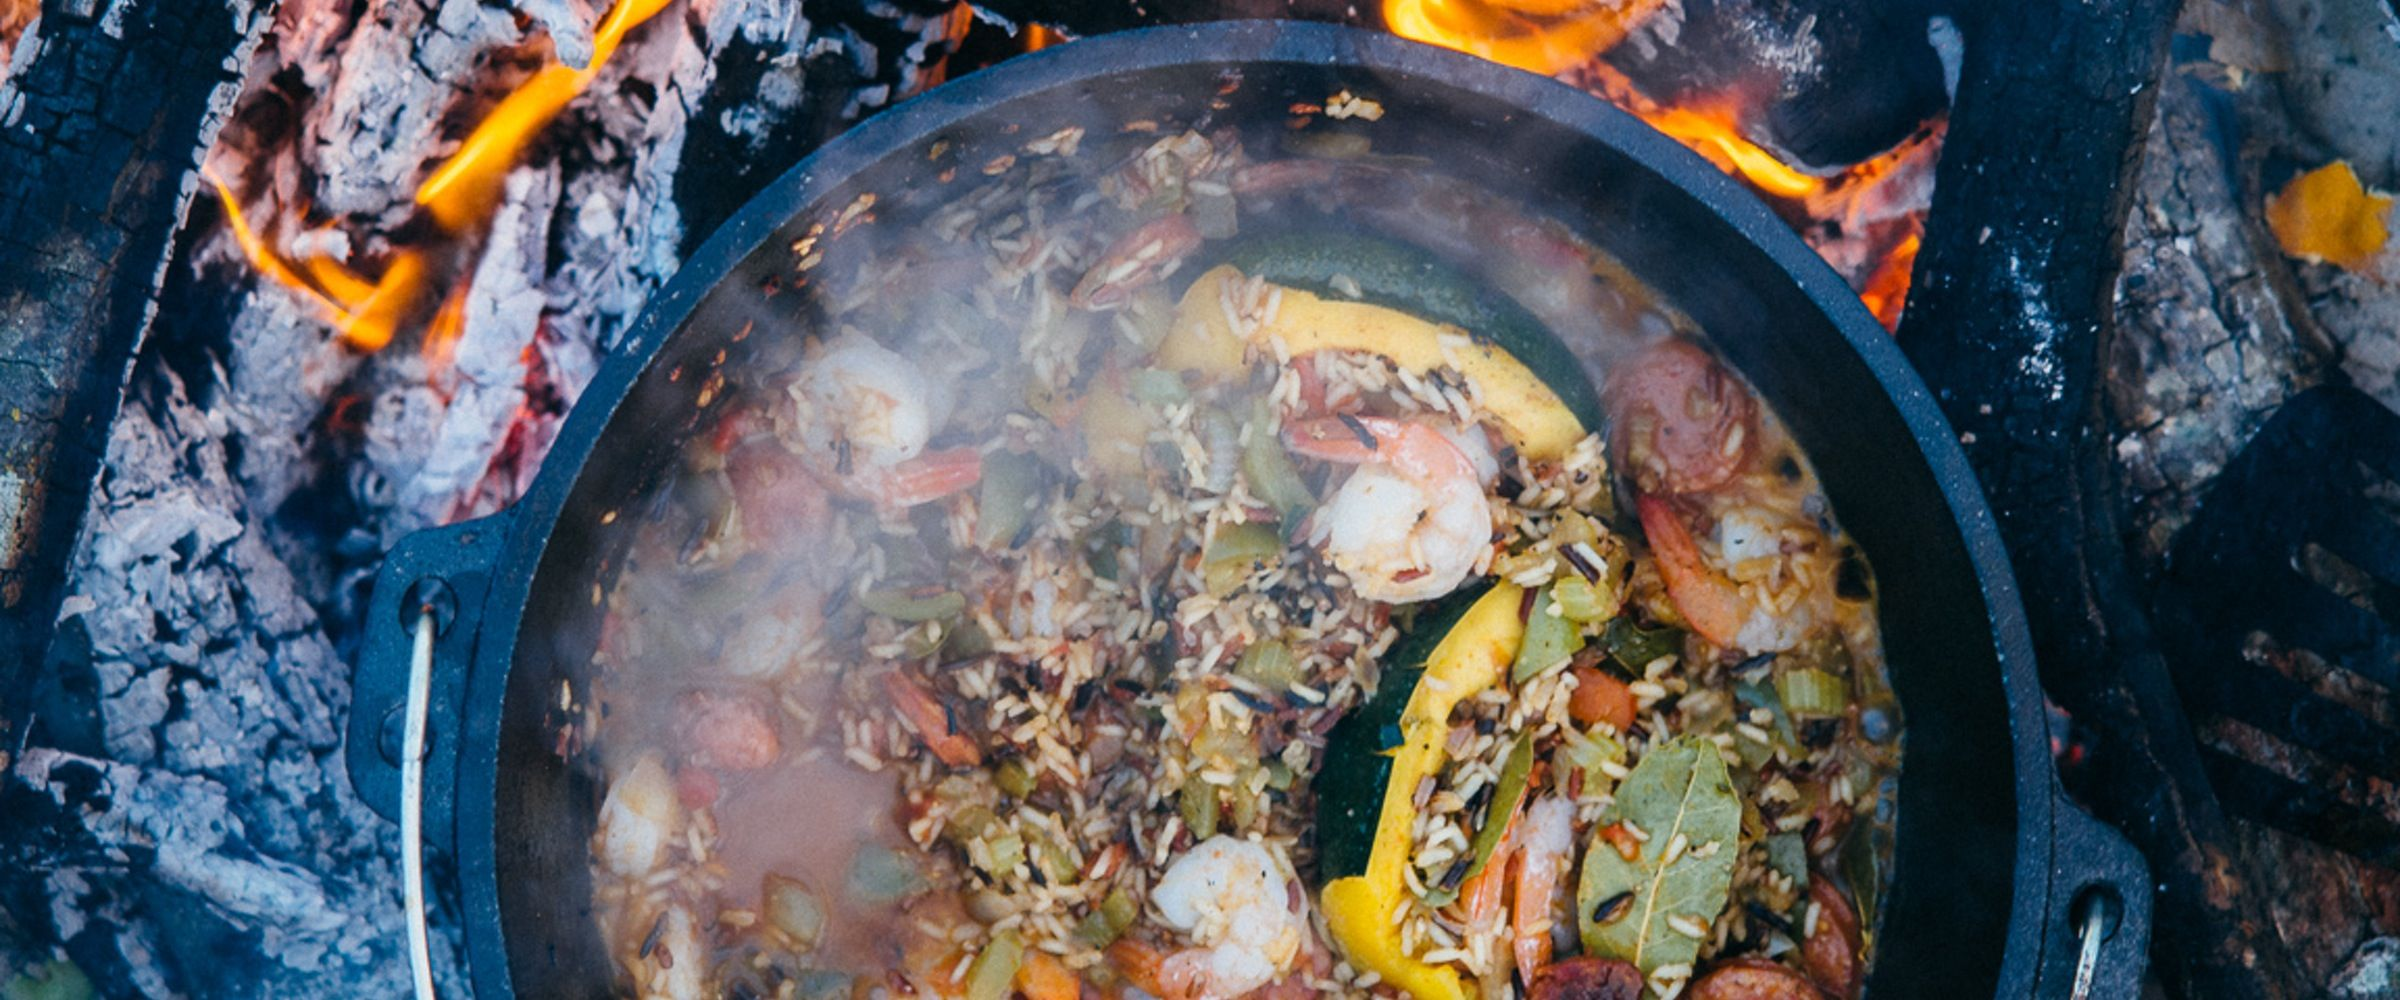 With a tasty blend of rice, veggies, shrimp, and sausage, and a relatively easy cooking process, Jambalaya is the perfect meal to feed lots of hungry mouths on your next big camping trip.